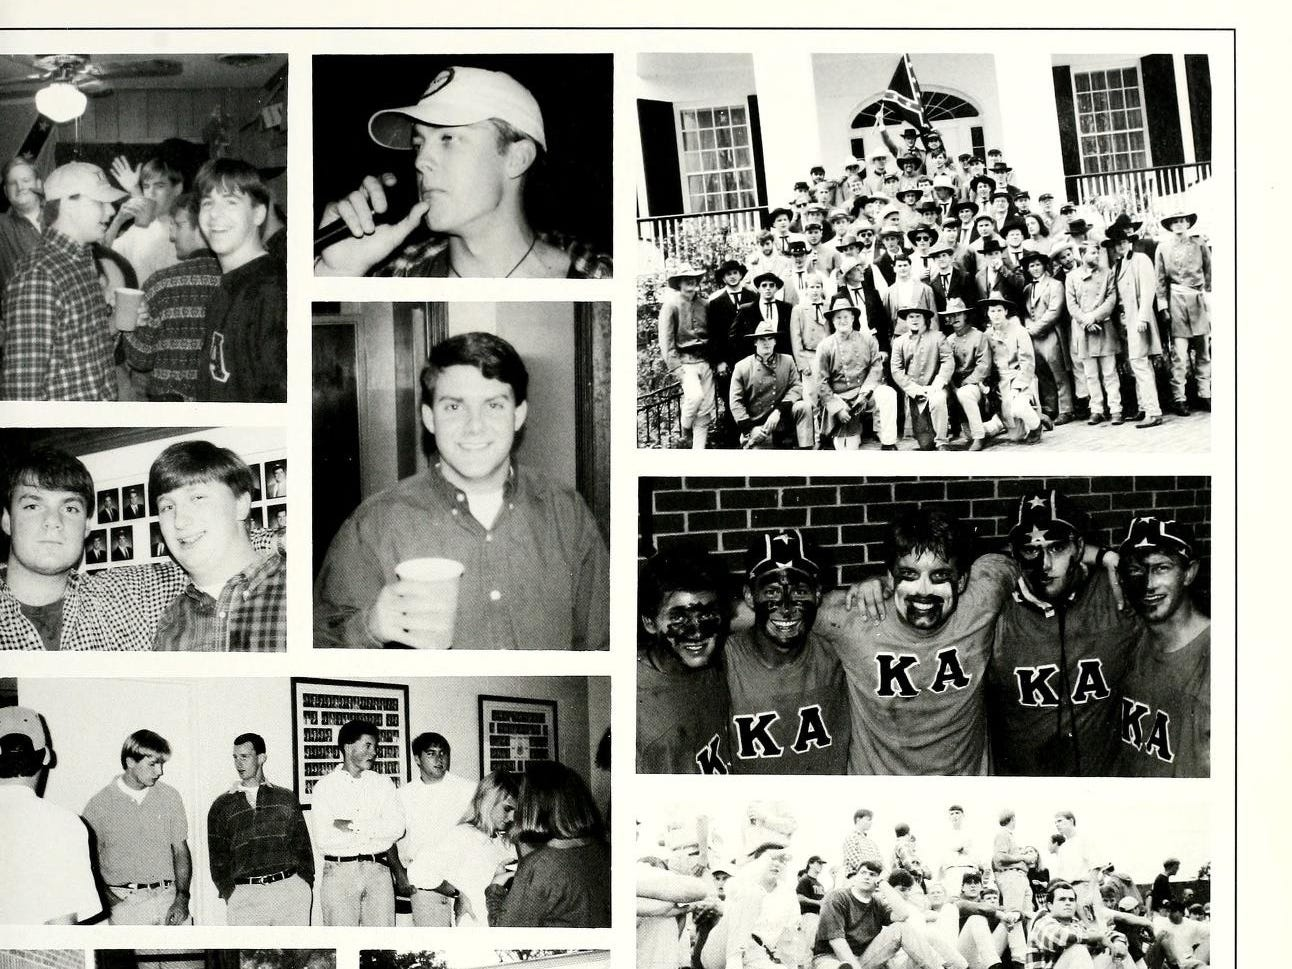 A page from the Kappa Alpha section in the 1994-1995 yearbook of Millsaps College.